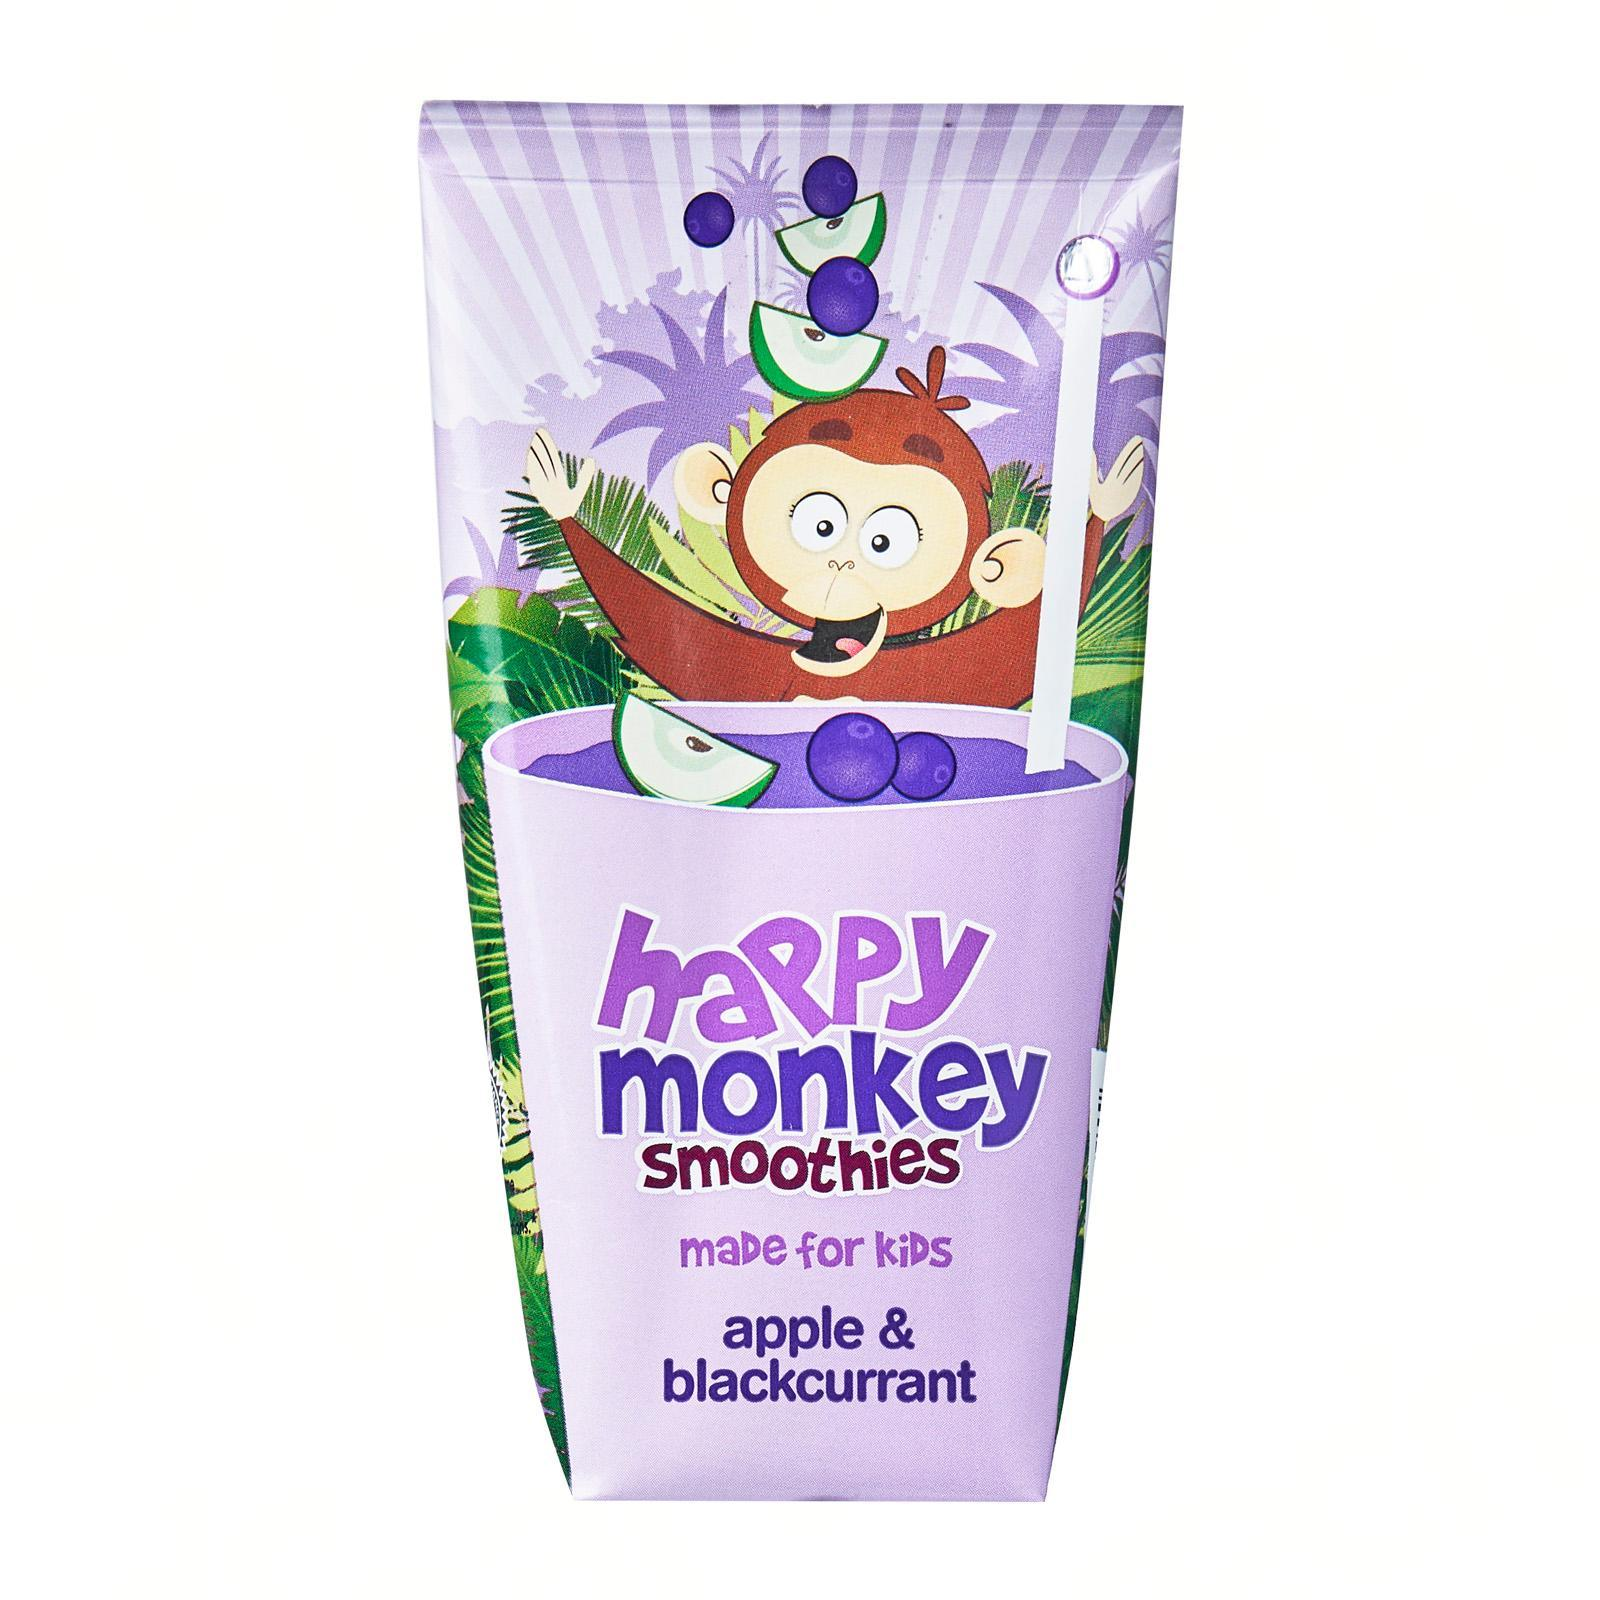 HAPPY MONKEY 100-Percent Fruit Smoothies - Made for Kids - Apple Blackcurrant